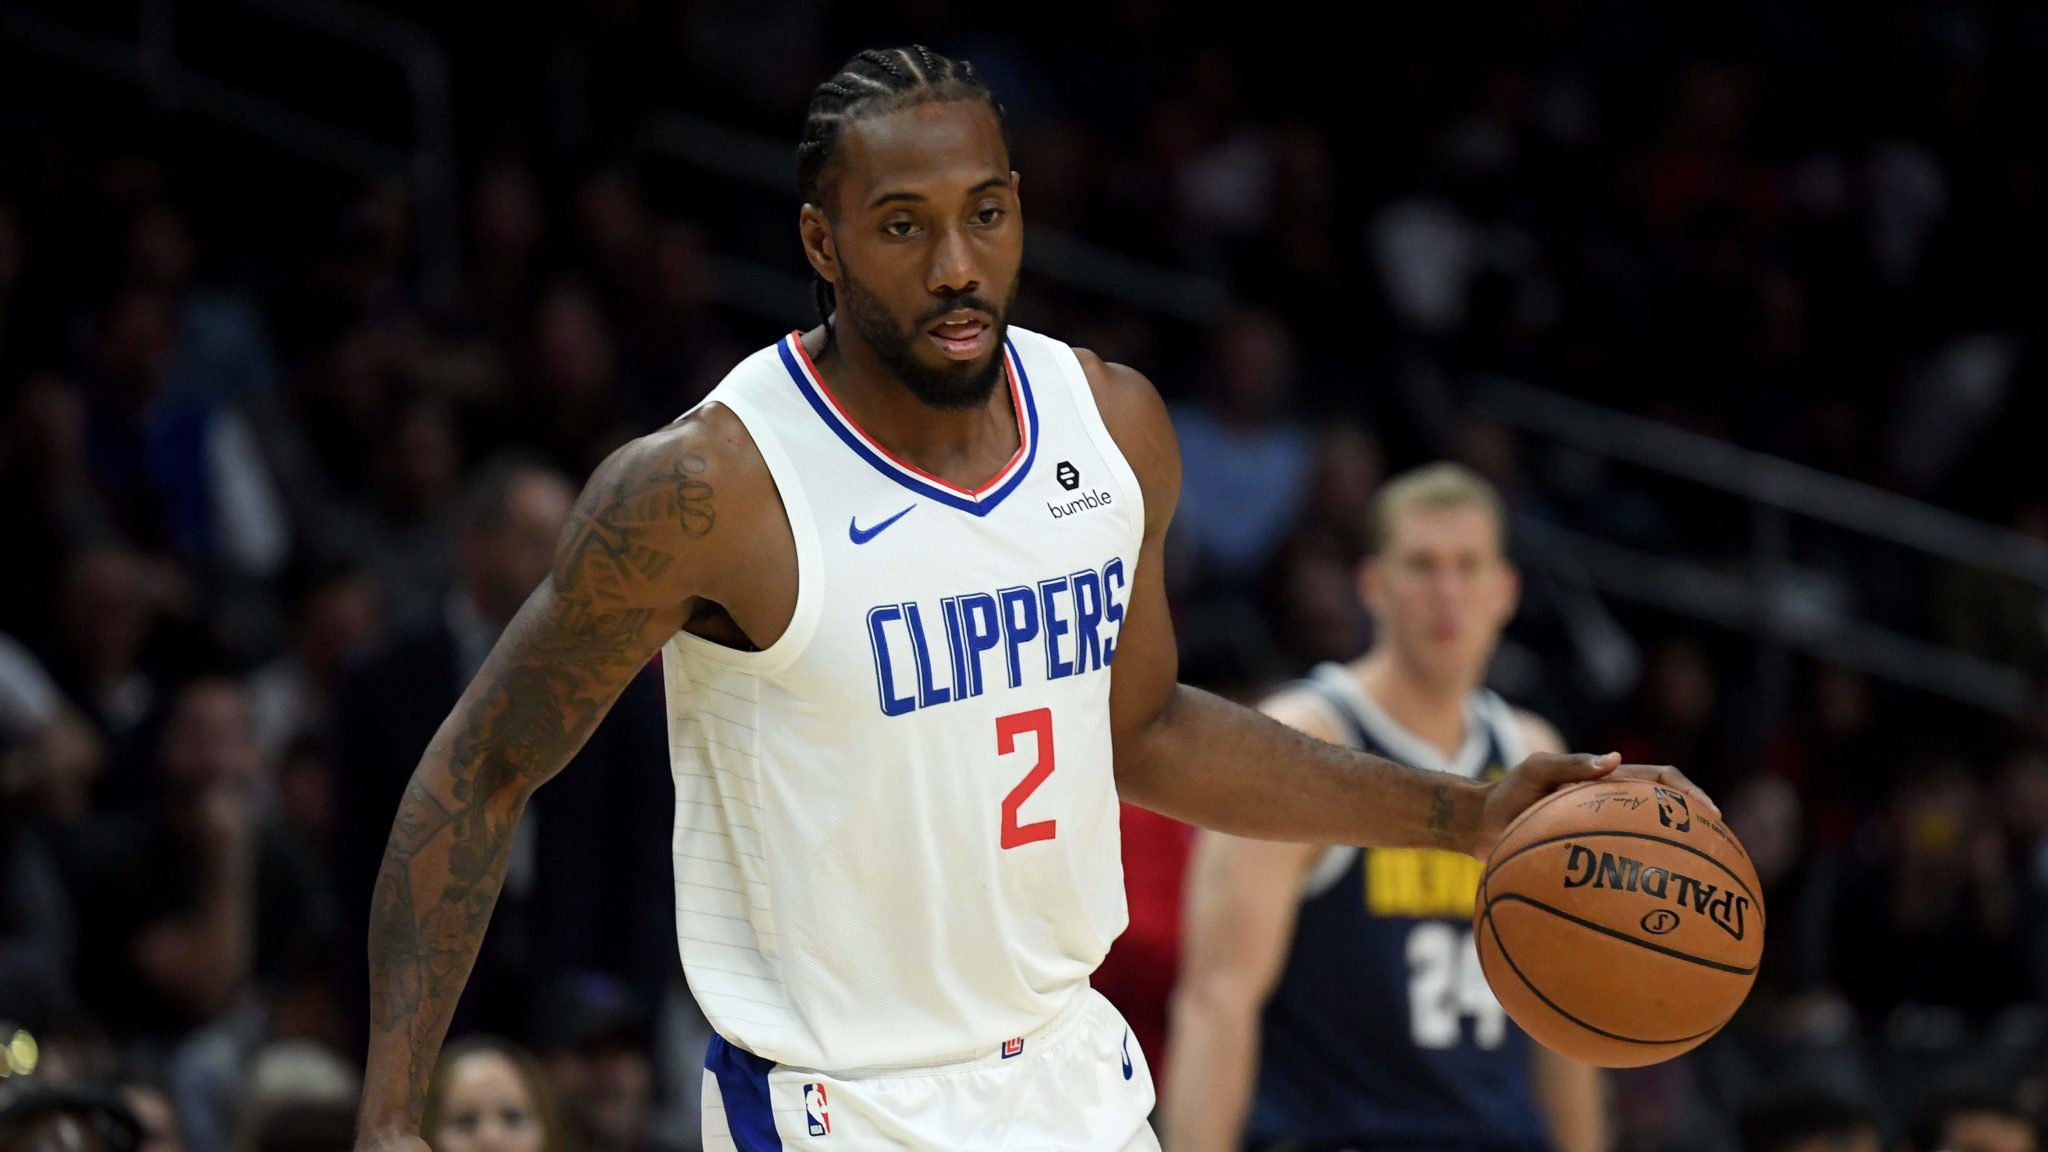 Kawhi Leonard: Unknown When or if He Will Return From ACL This Year